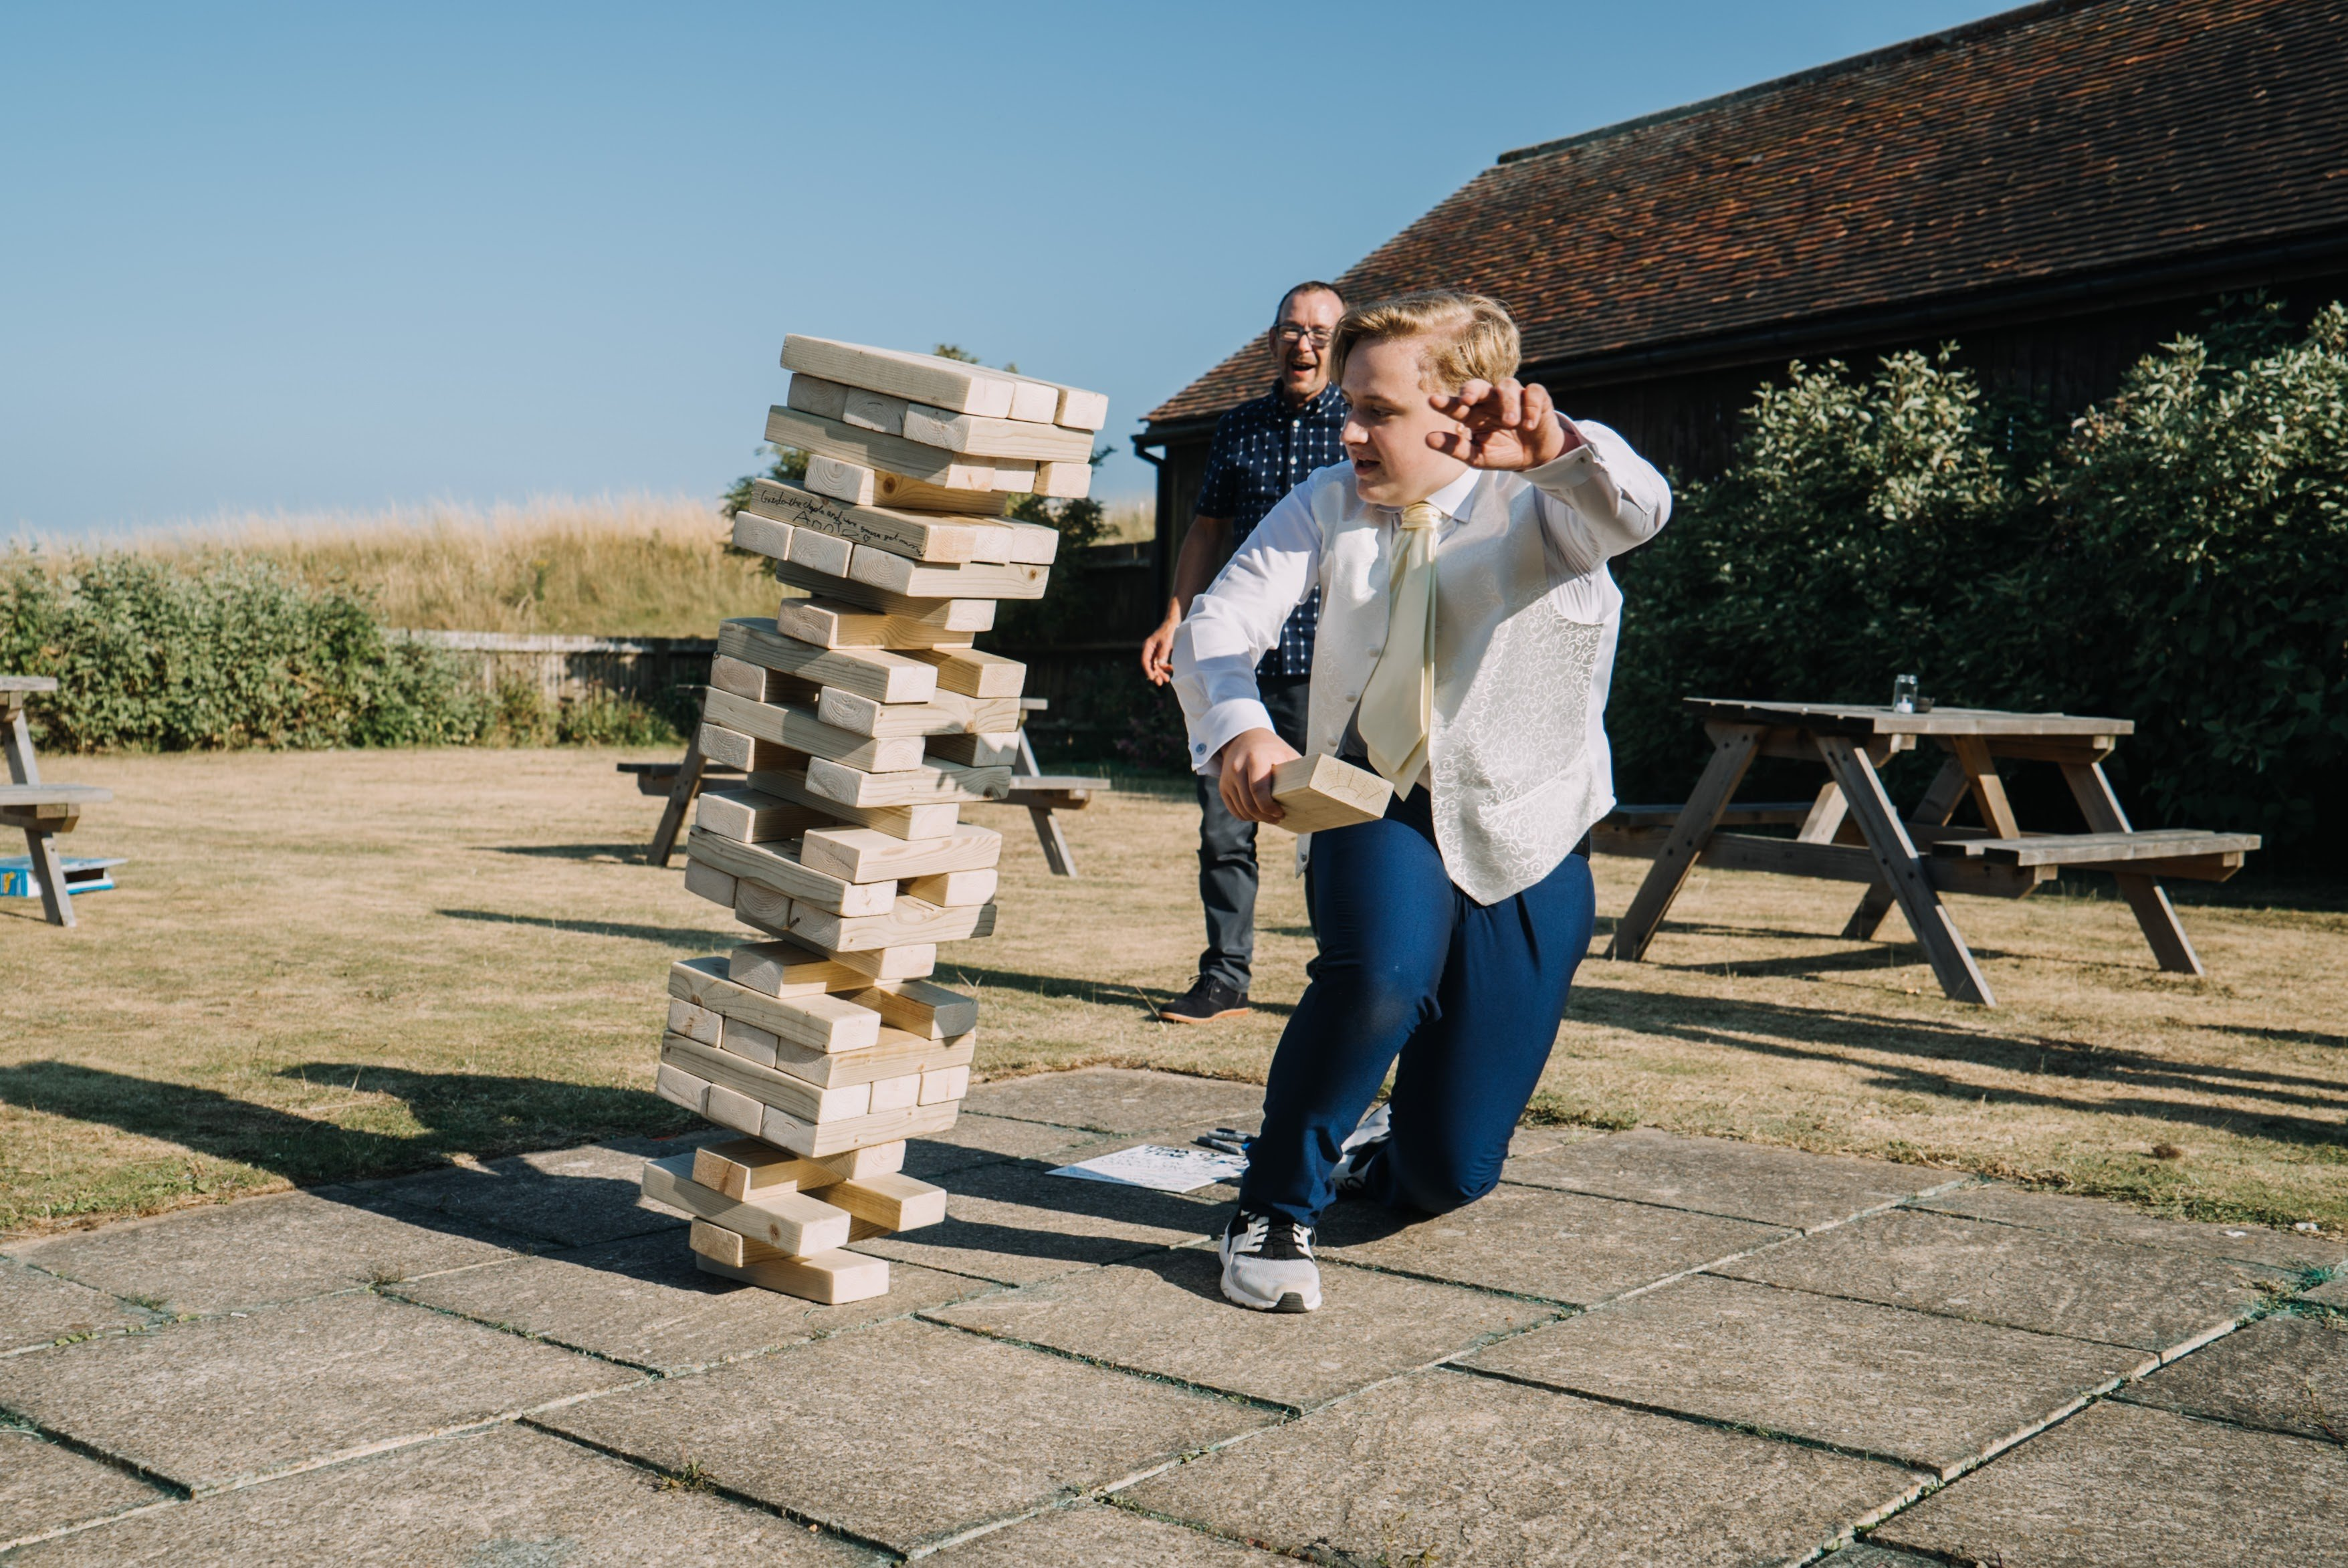 Running away from falling Jenga